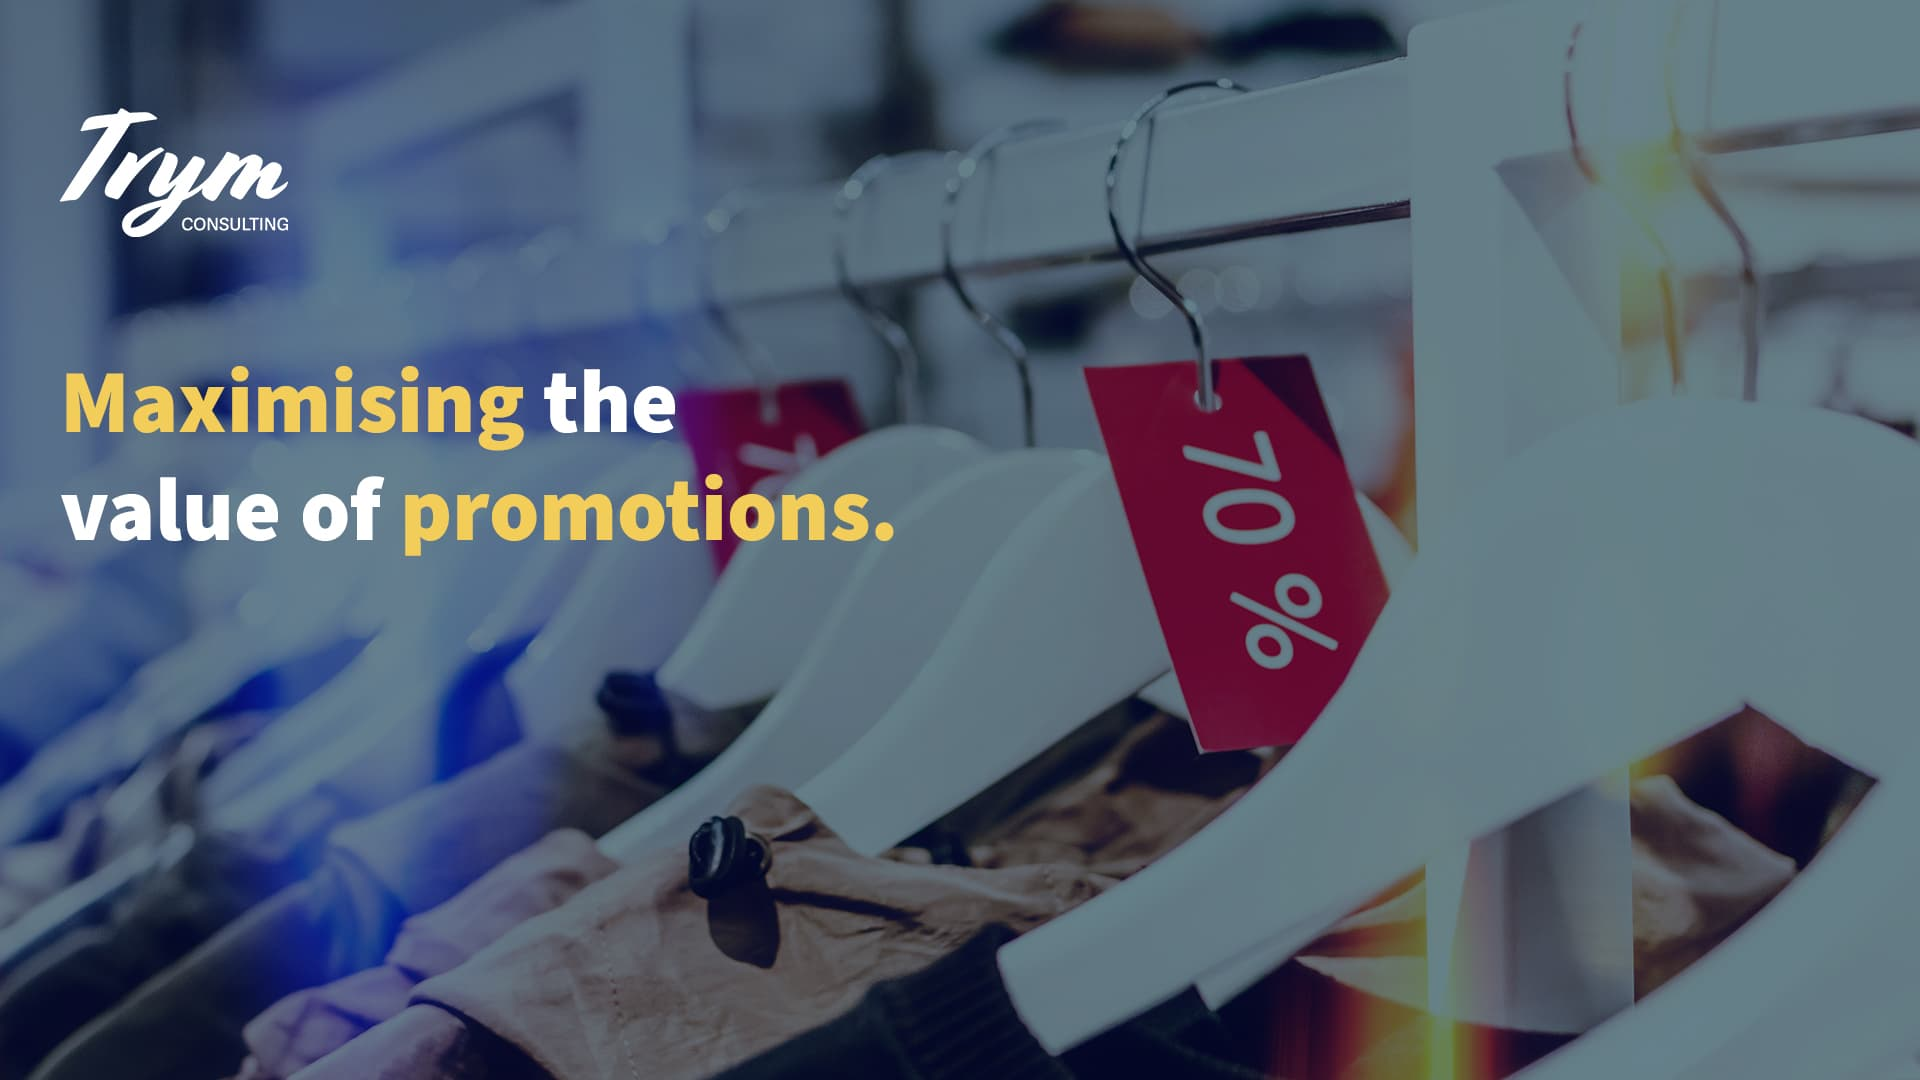 Maximising the Value of promotions